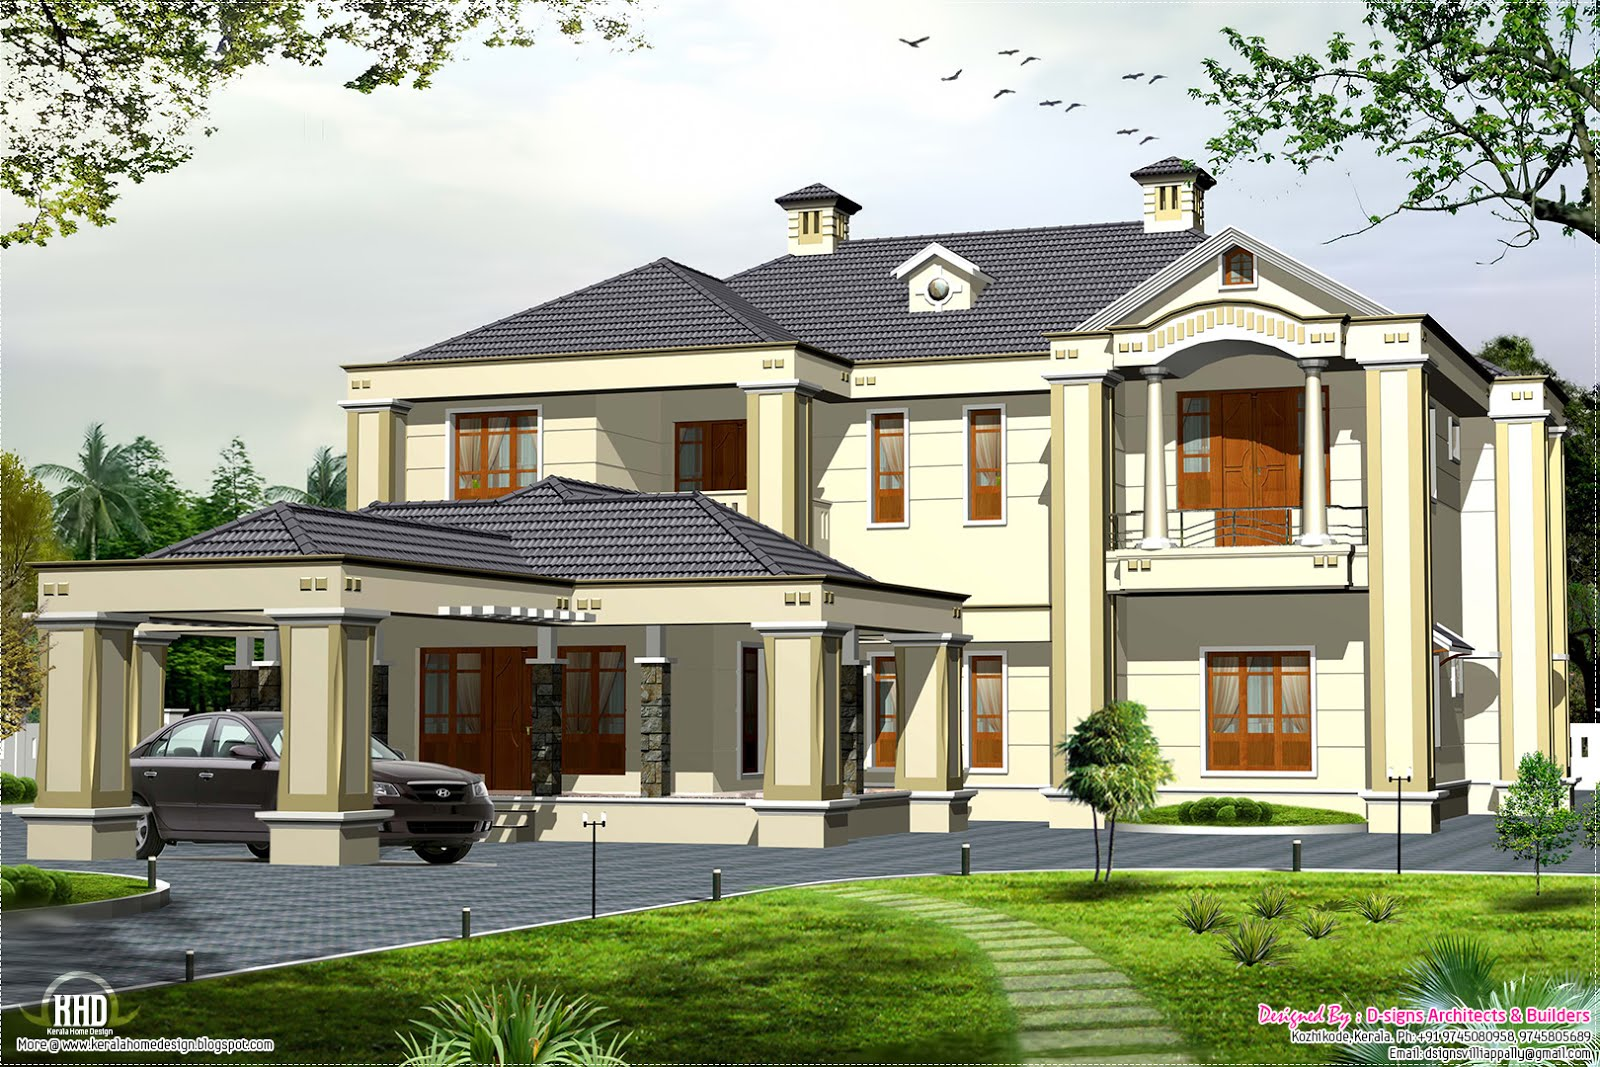 Colonial style 5 bedroom victorian style house enter Colonial home builders